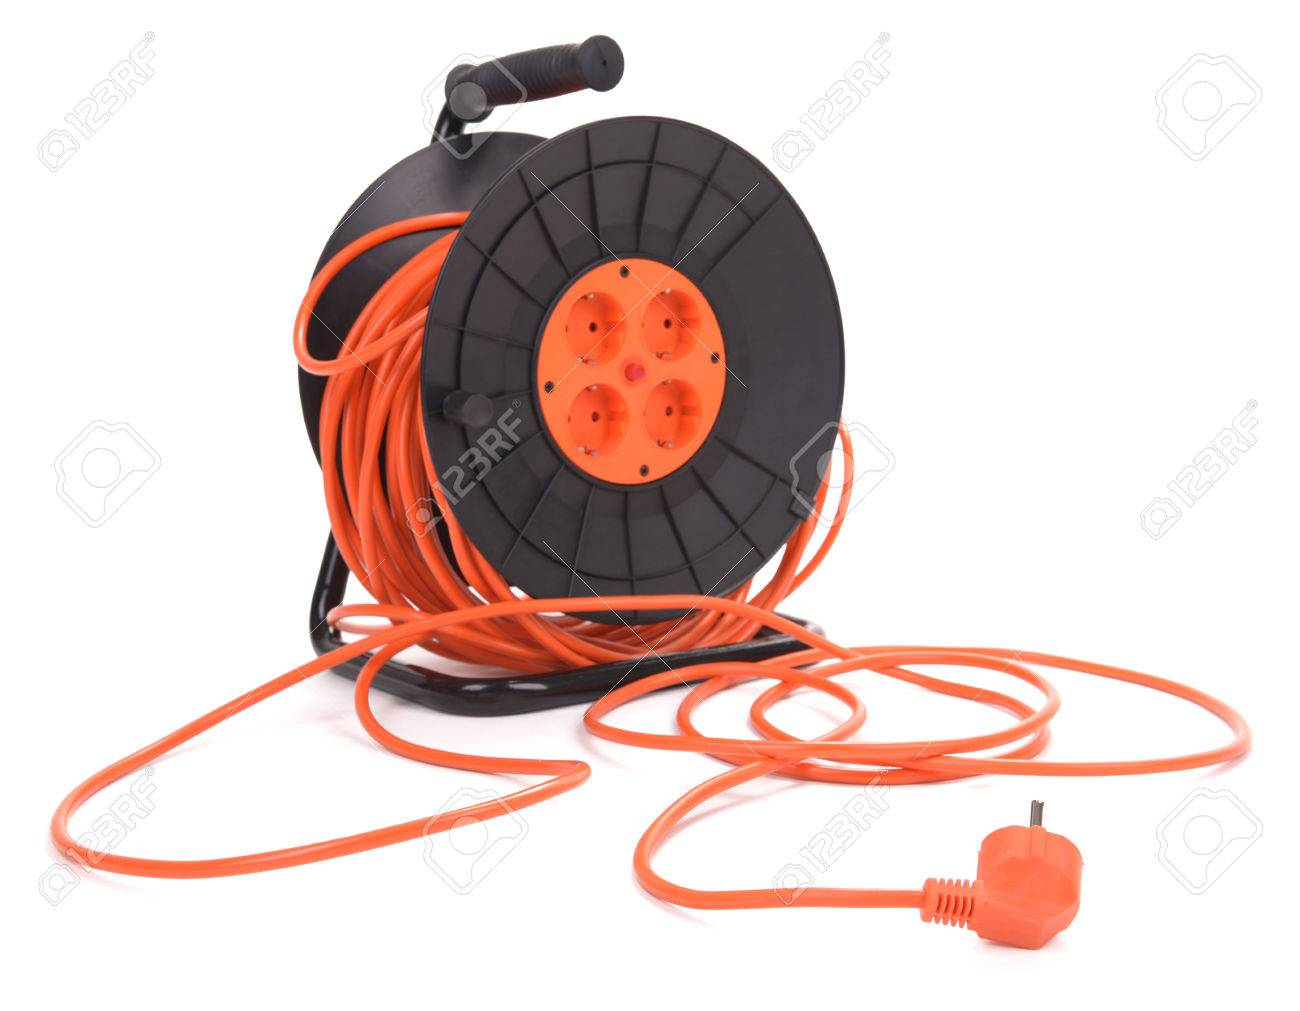 Extension Electric Cable Reel Isolated On White Background Stock Photo